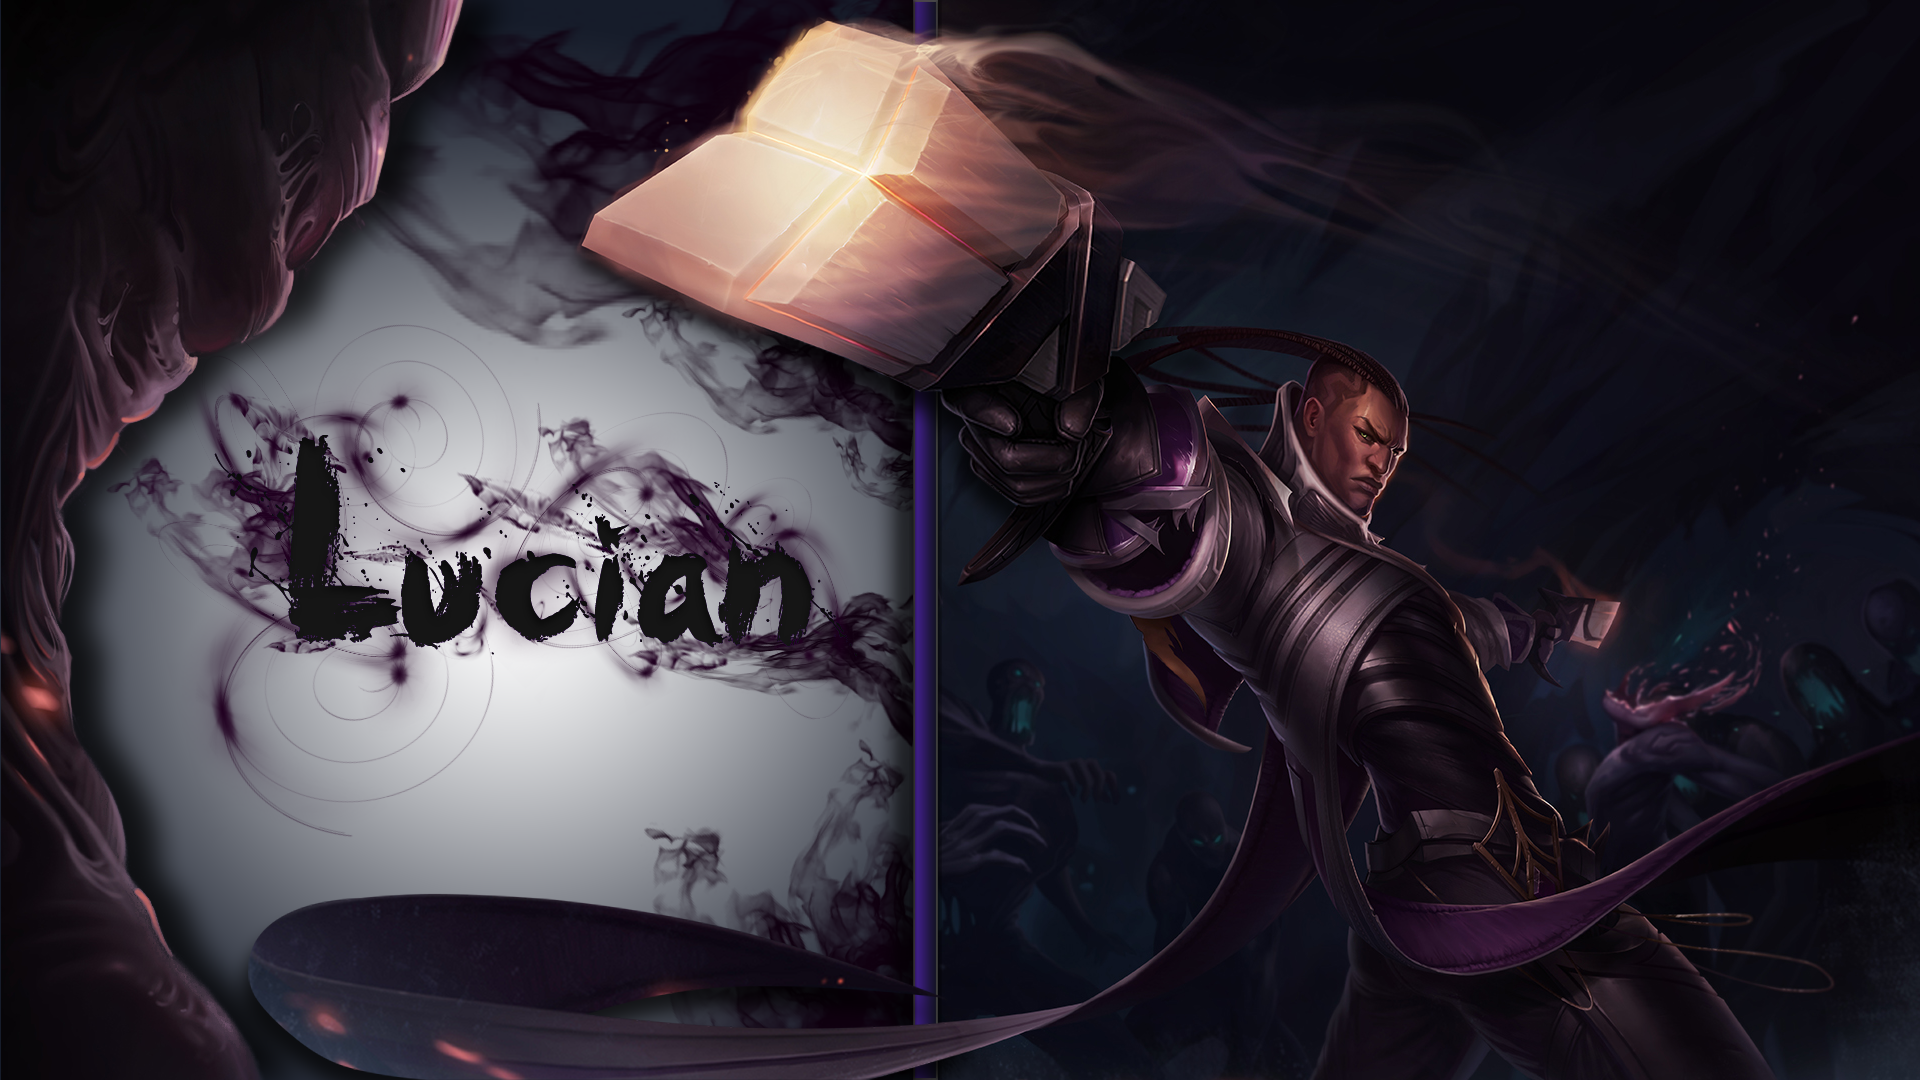 Lucian Fan Art - League of Legends Wallpapers